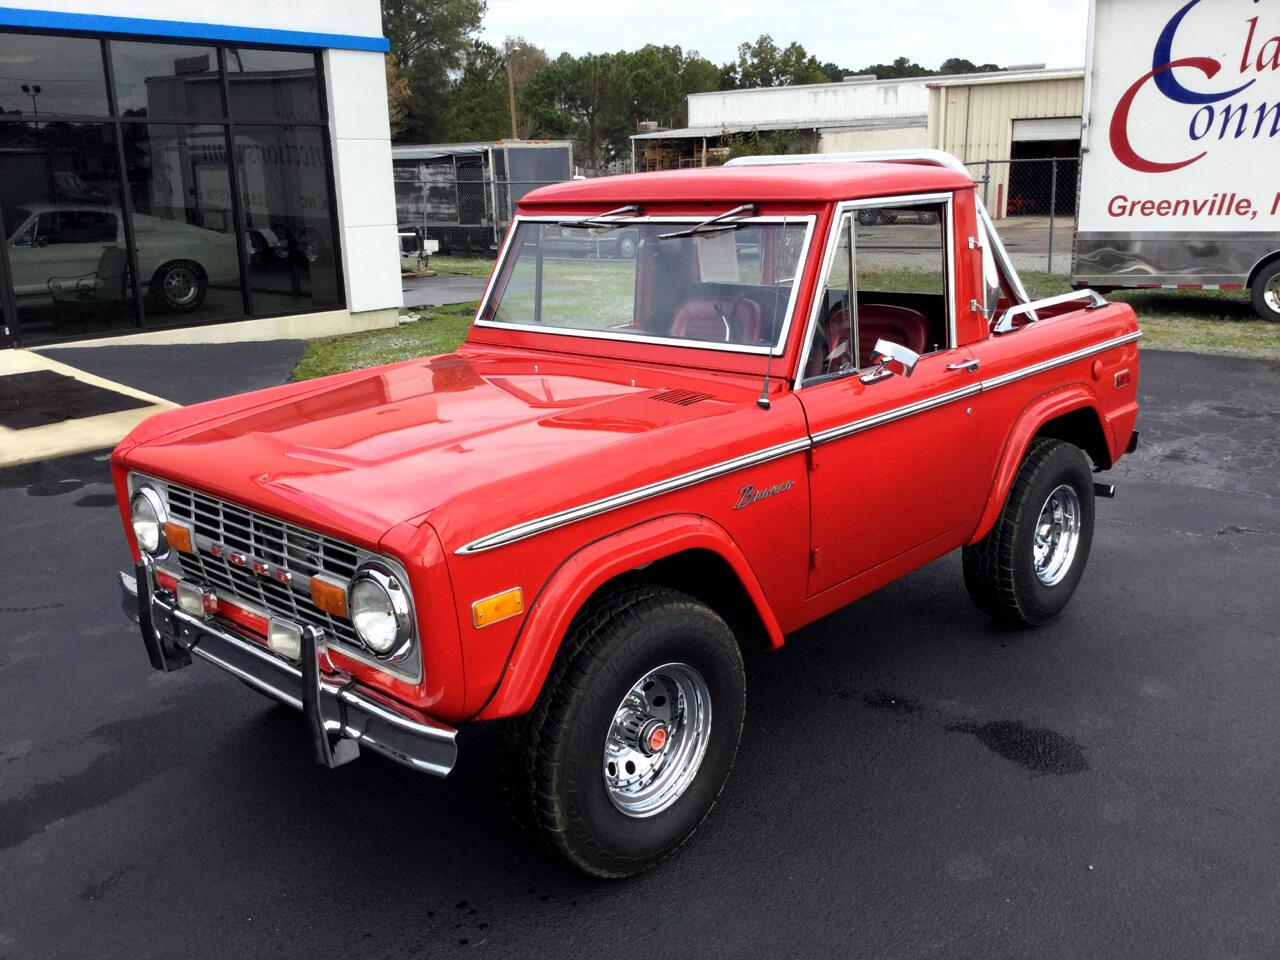 1974 Ford Bronco (CC-987313) for sale in Greenville, North Carolina